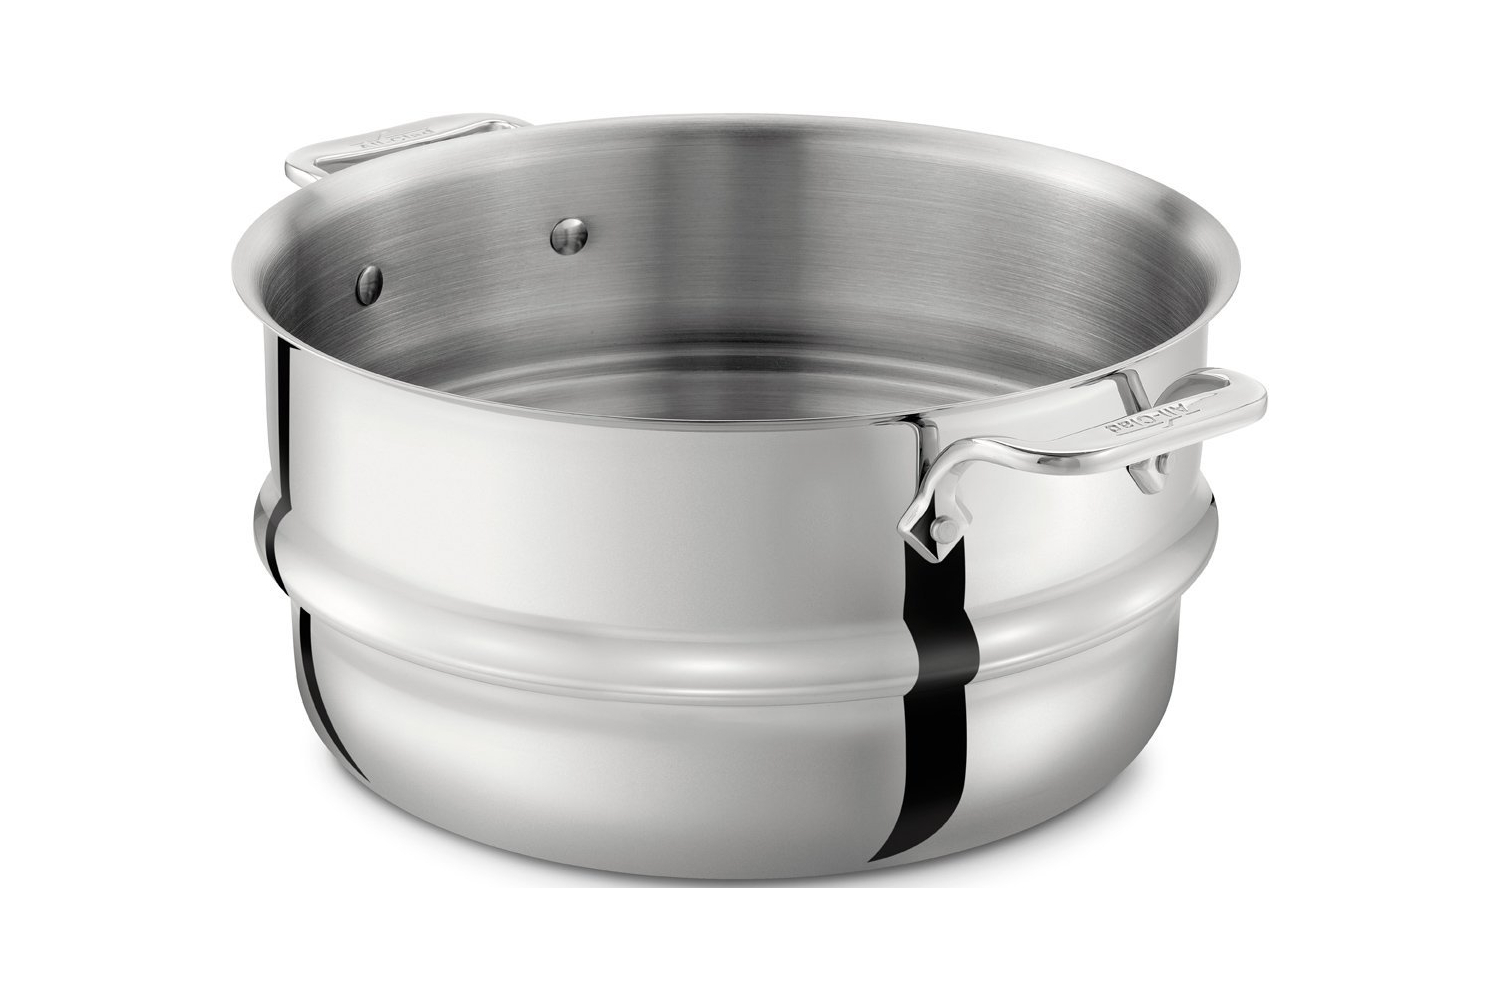 All-Clad Stainless Steel Stockpot Steamer Insert